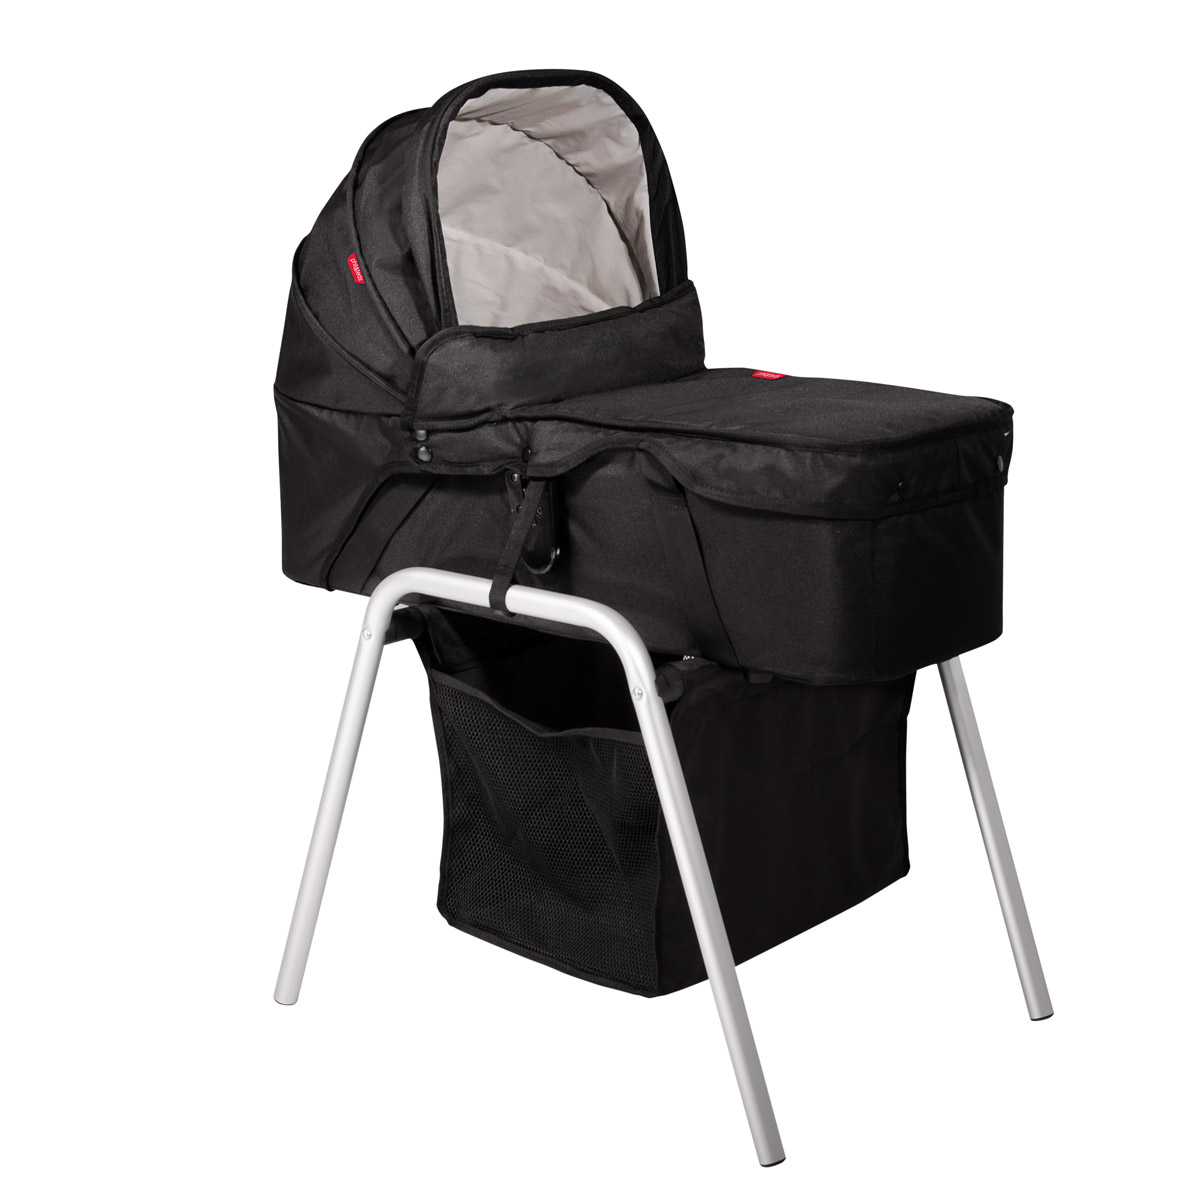 carrycot stand with snug carrycot and black hood 3 qtr angle